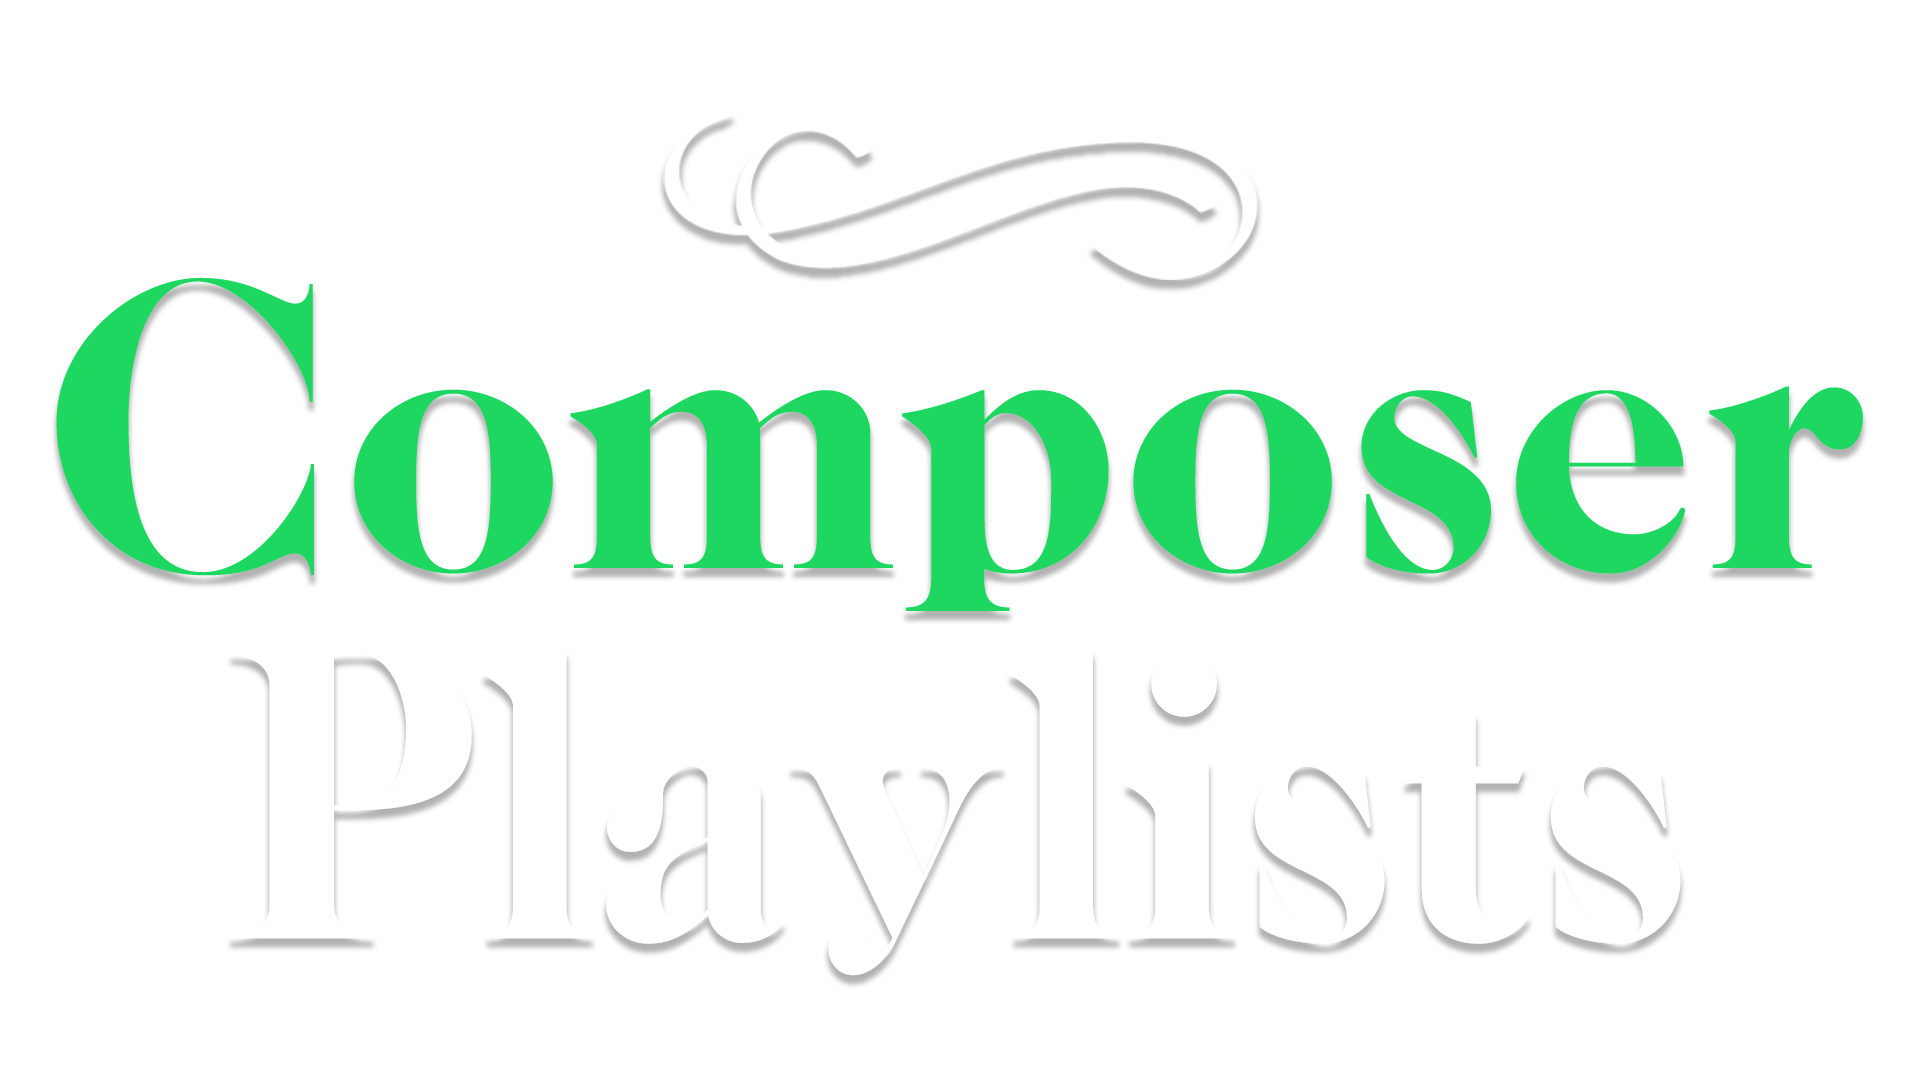 composer-playlists-alone.png